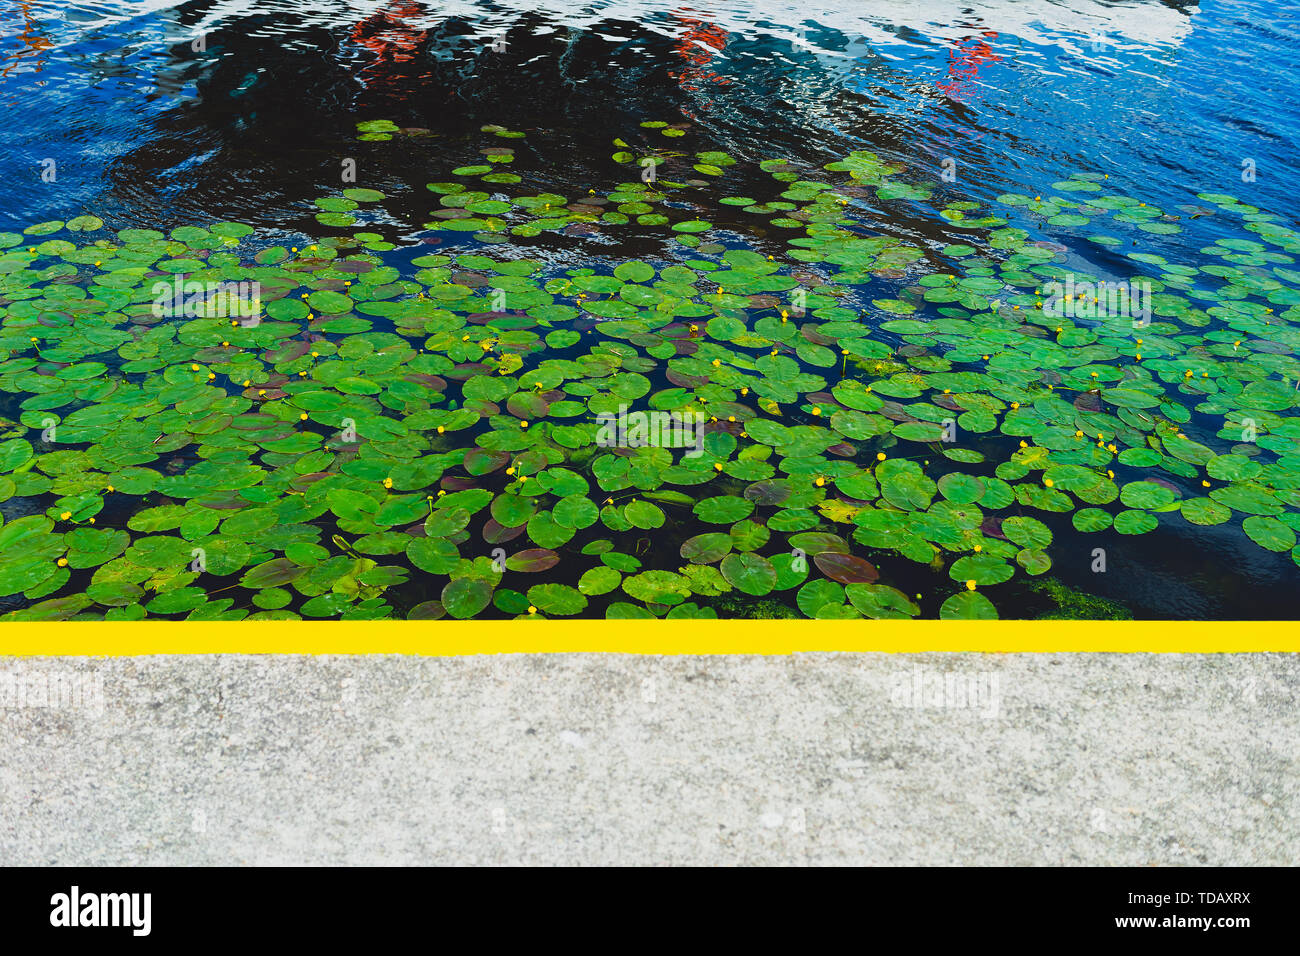 Green water lilies in the river at the pier Stock Photo